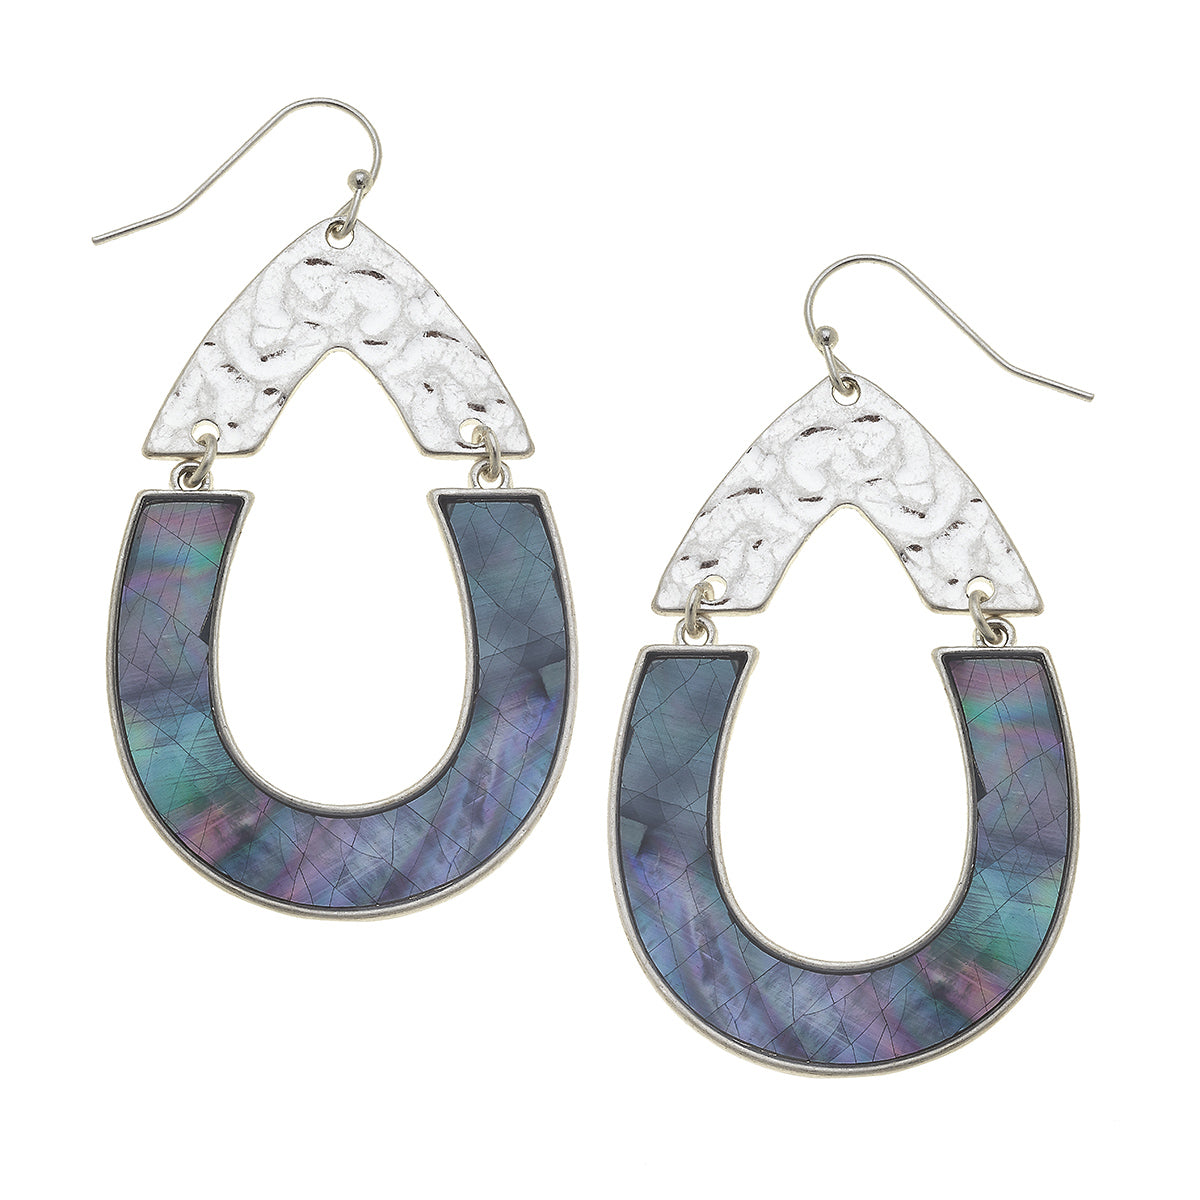 Harlow Teardrop Earrings in Grey Mother of Pearl Shell